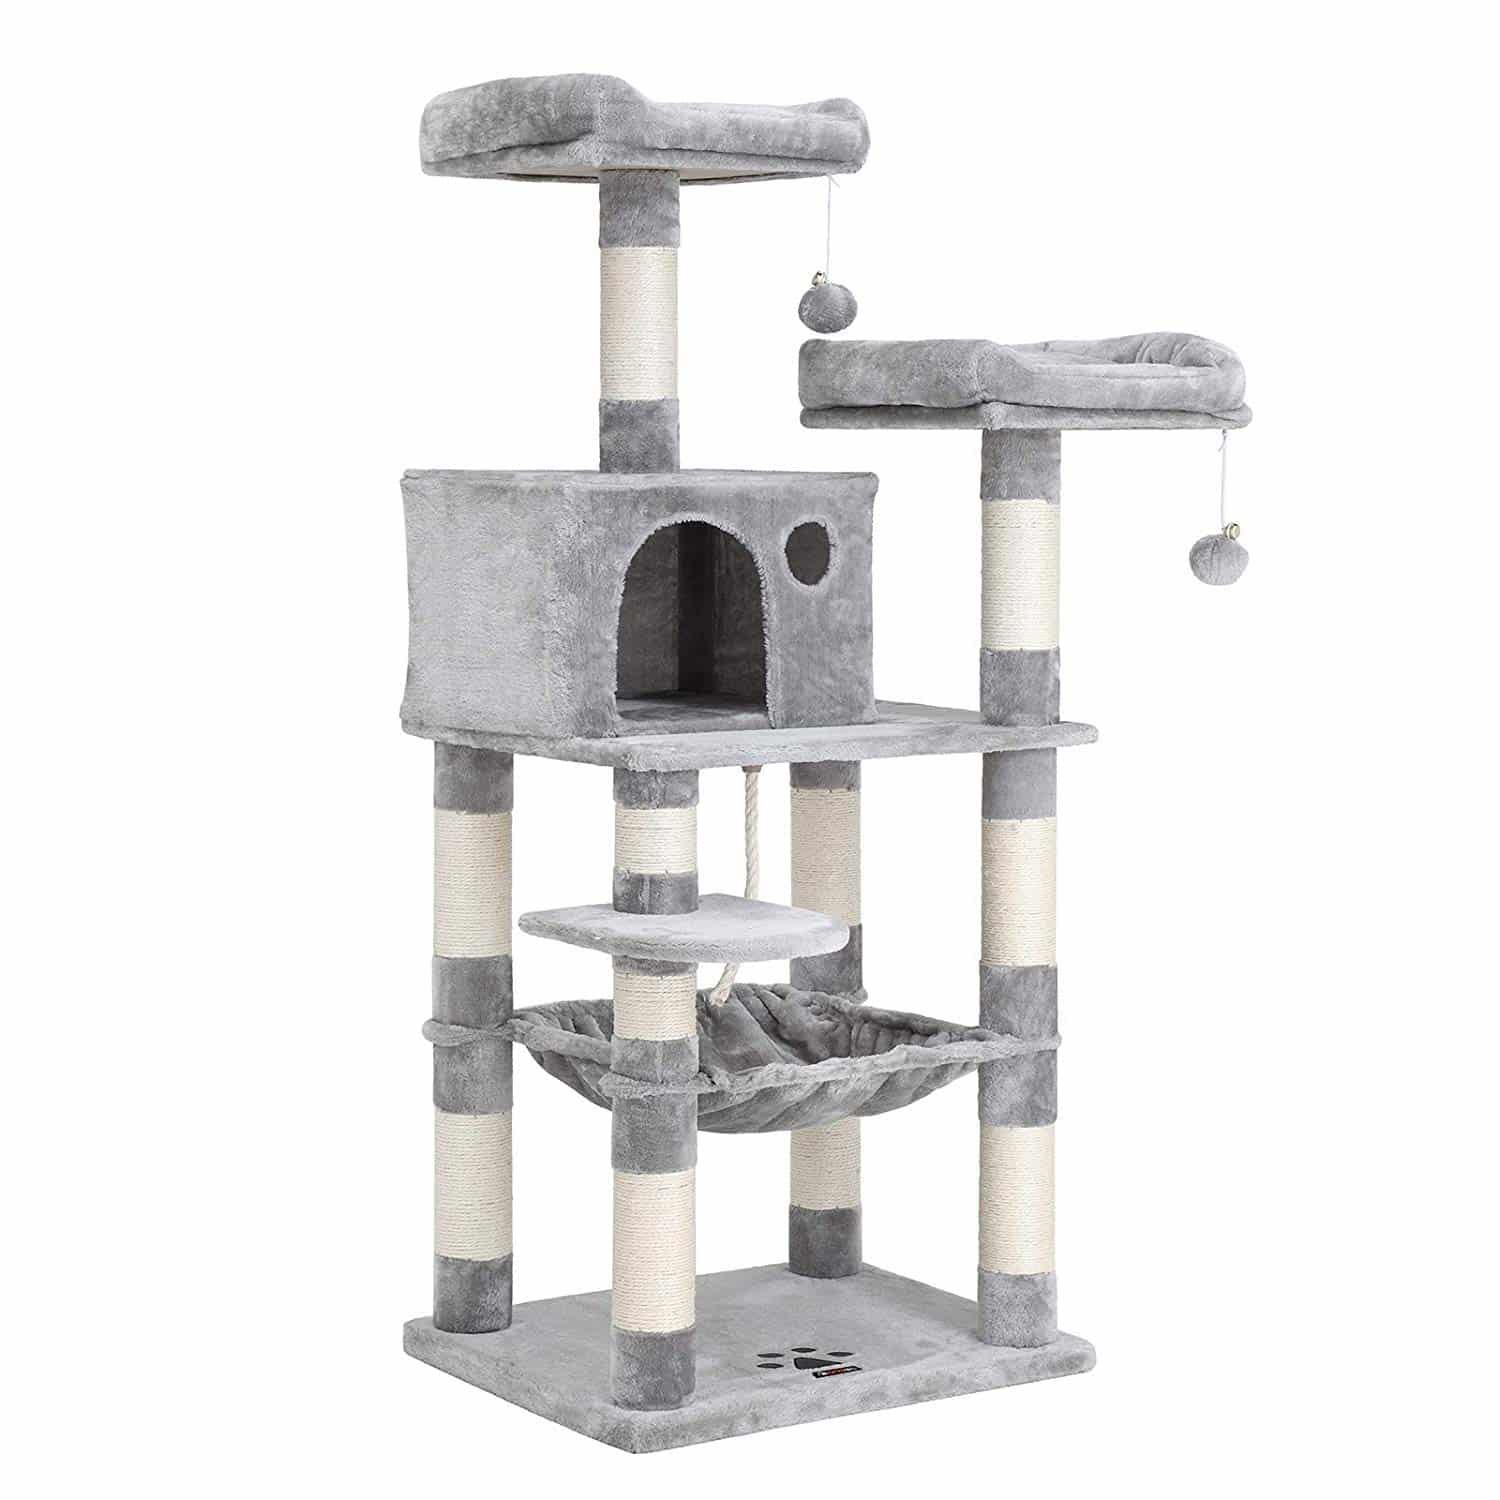 4. FEANDREA 58 inches Multi-Level Cat Tree